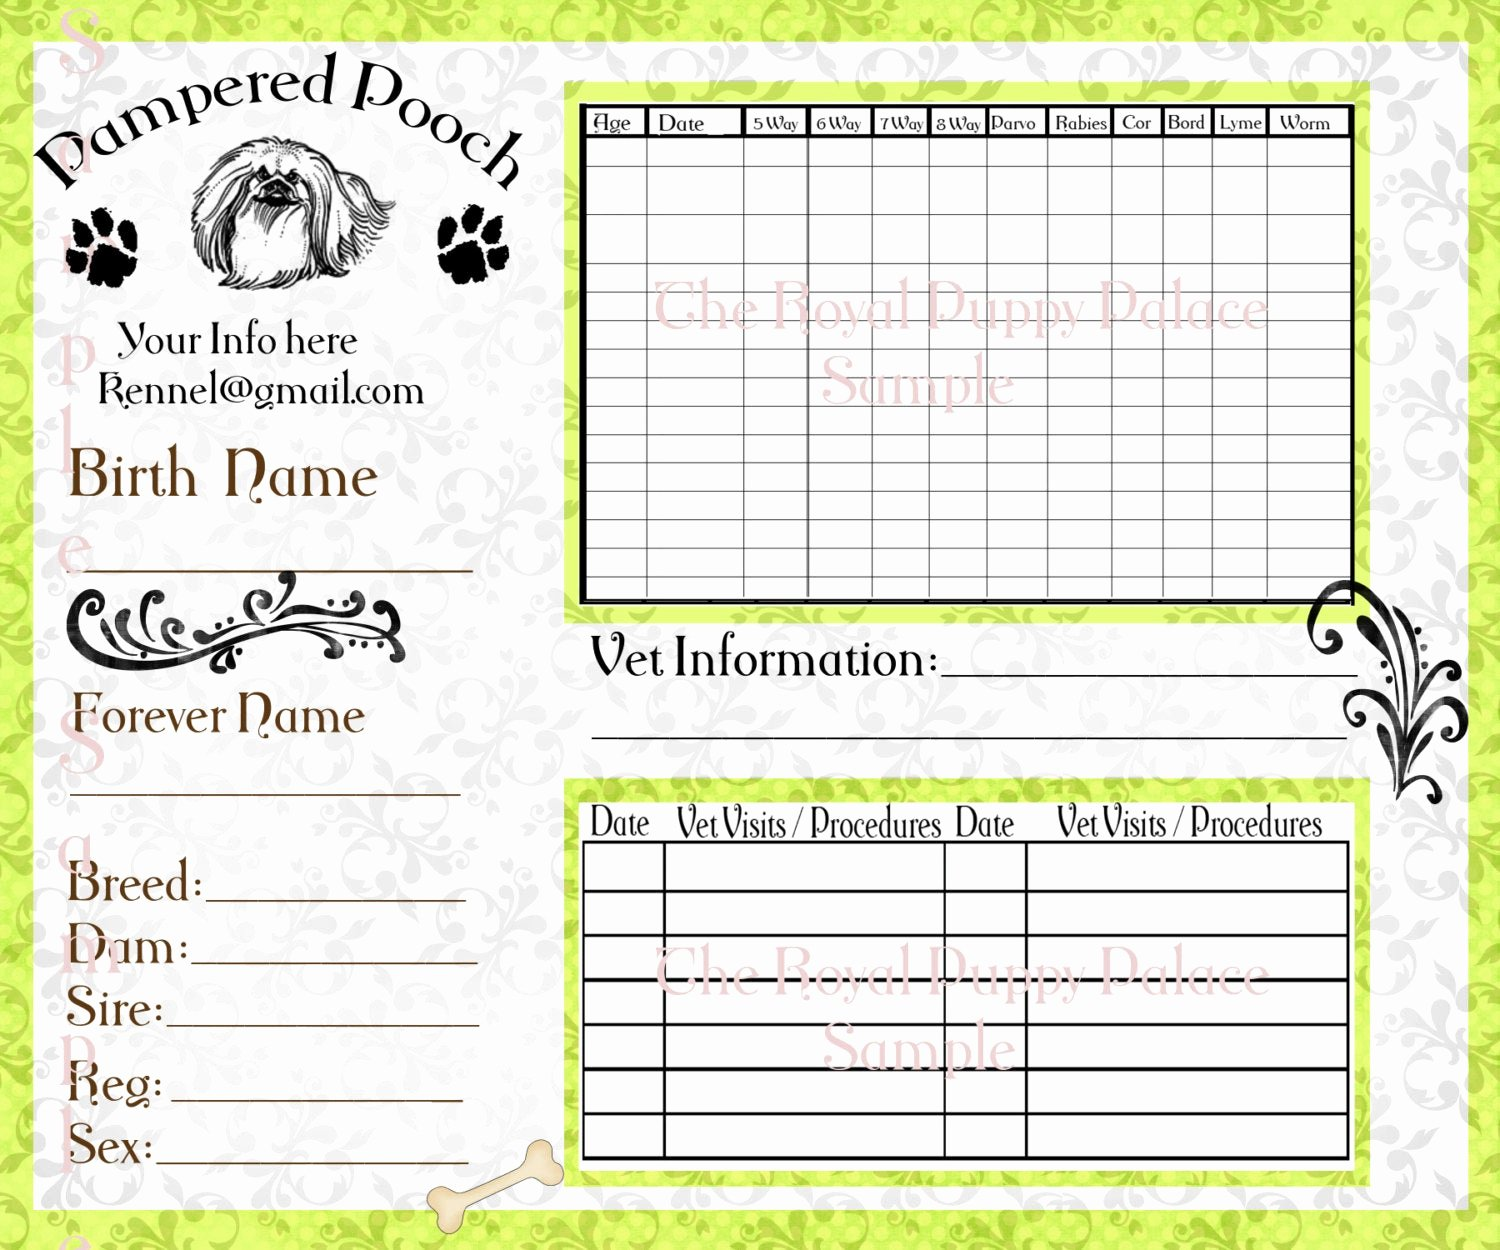 Dog Health Record Template New Pampered Pooch Green Customizable Vaccination Cards for Dog